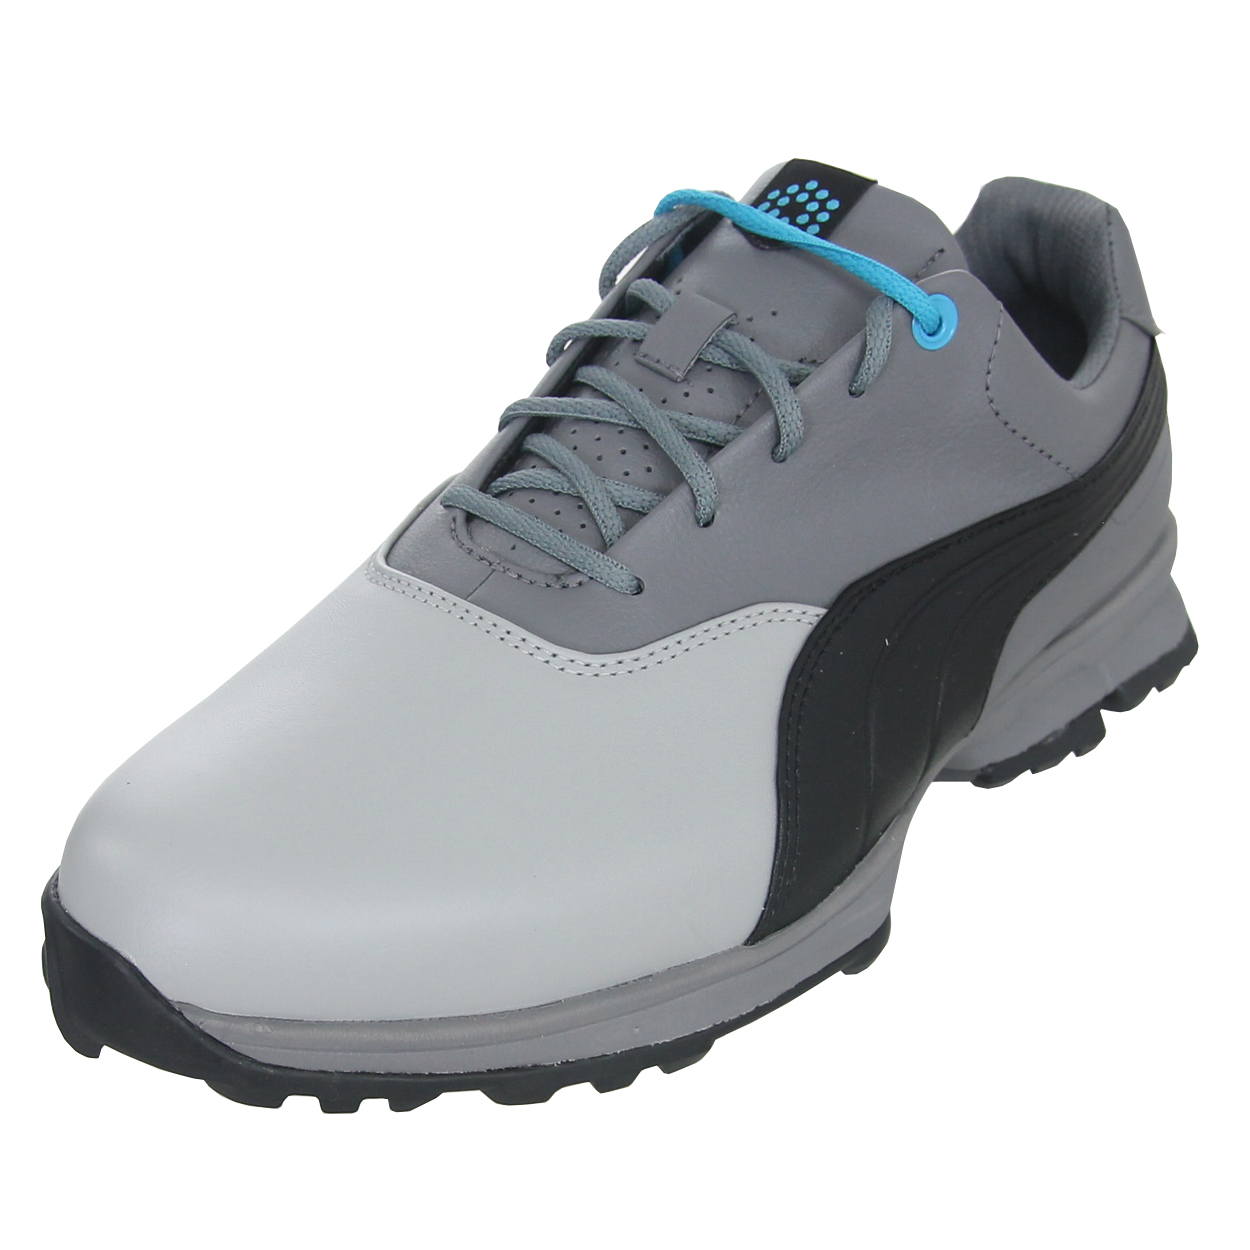 PUMA Ace Men's Leather Waterproof Golf Shoe, Brand New - by Puma